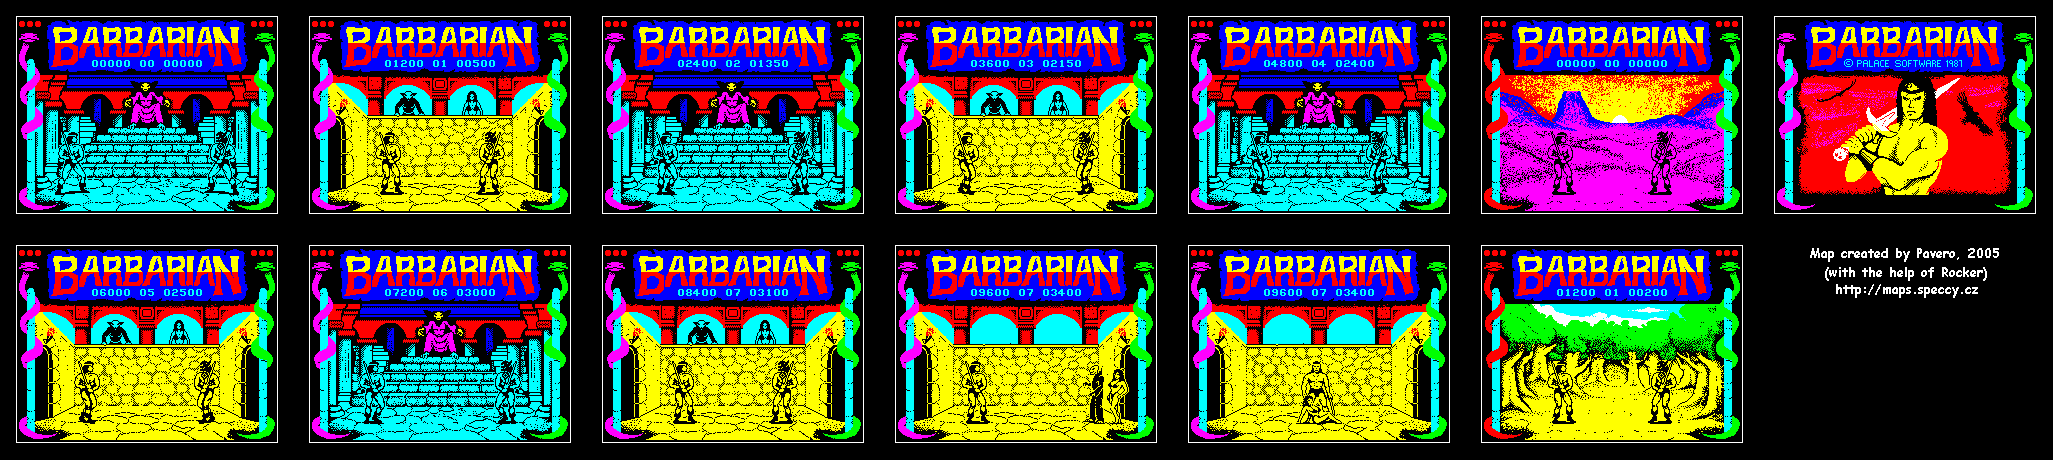 Barbarian 1 - The Map